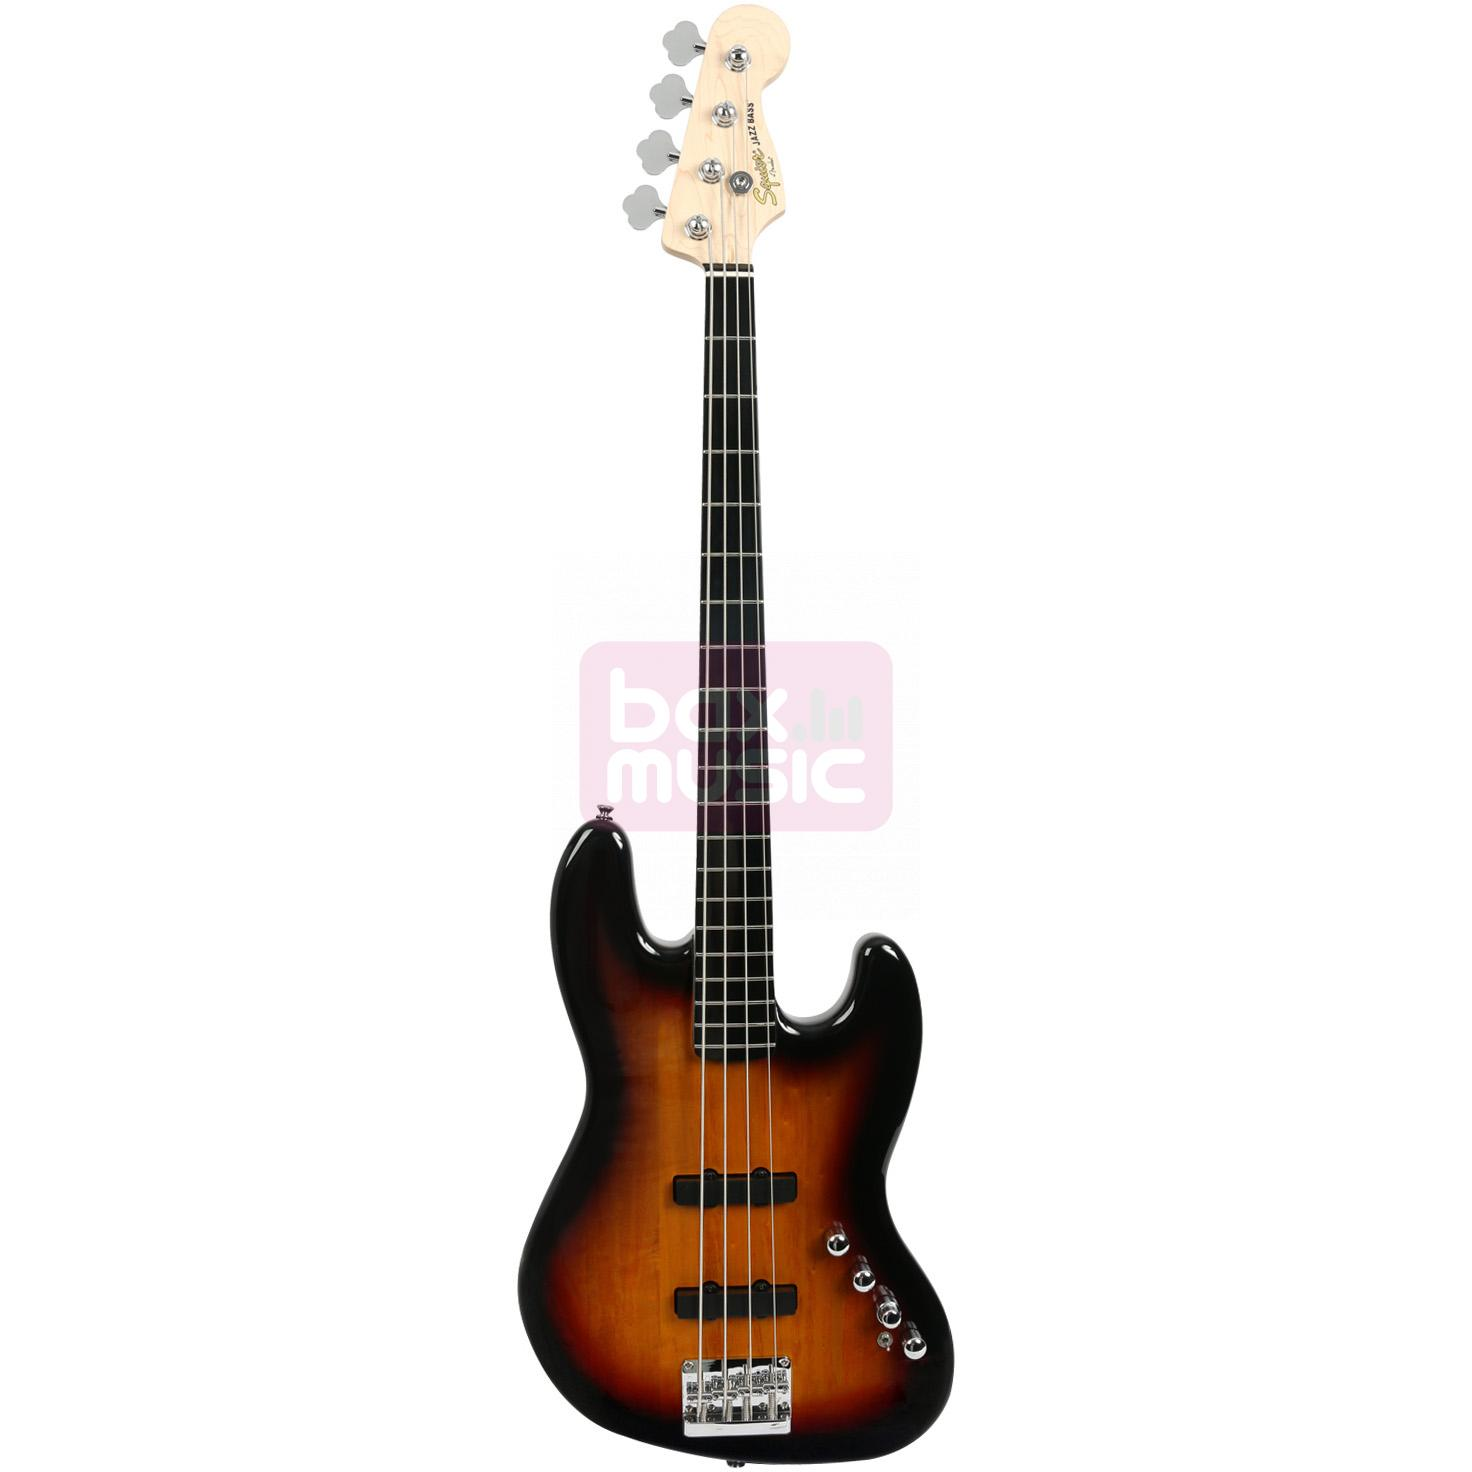 Squier Deluxe Jazz Bass IV Active 3-Color Sunburst EB